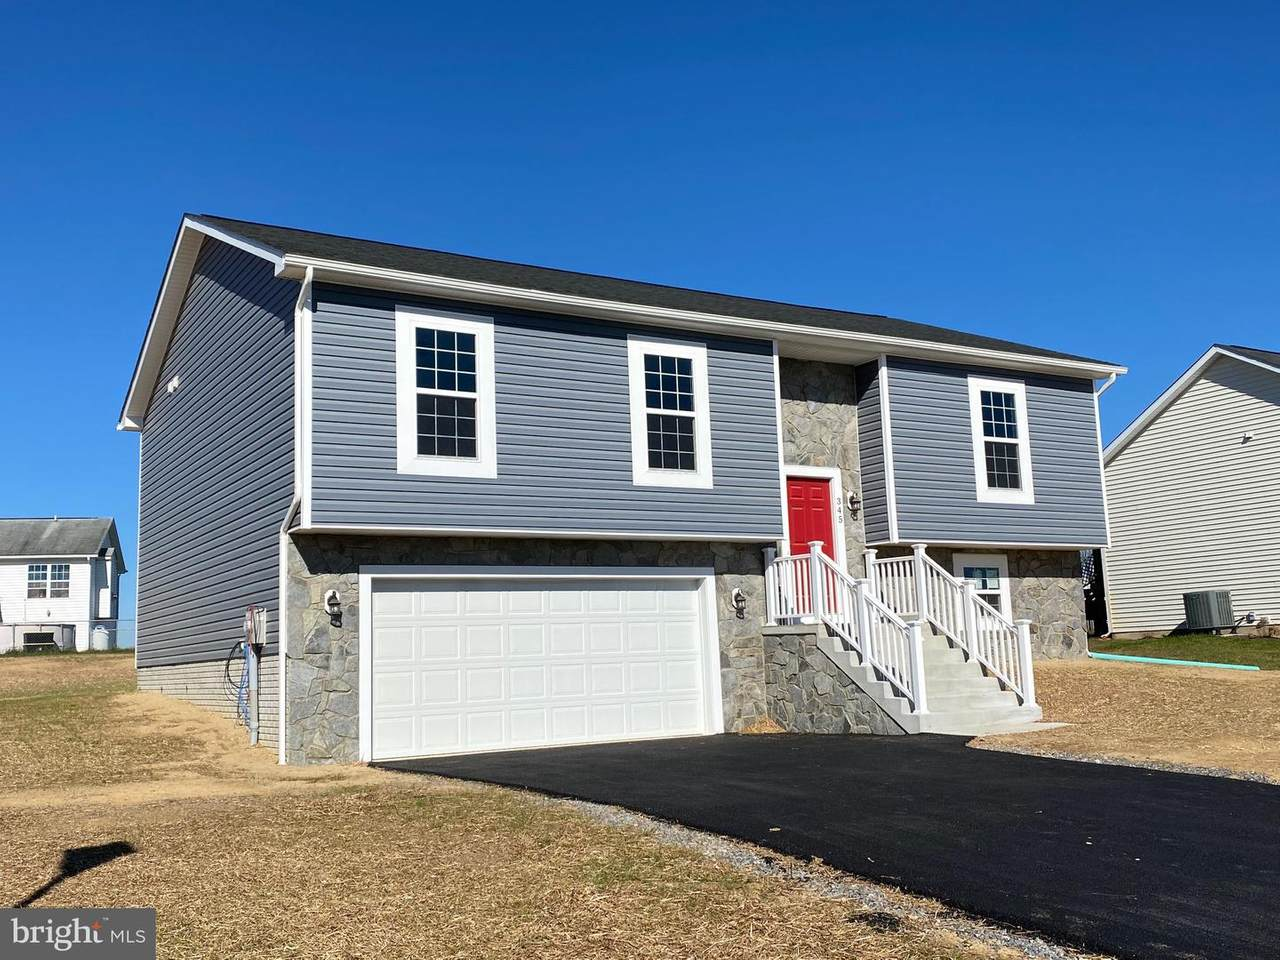 345 Ives Street - Photo 1